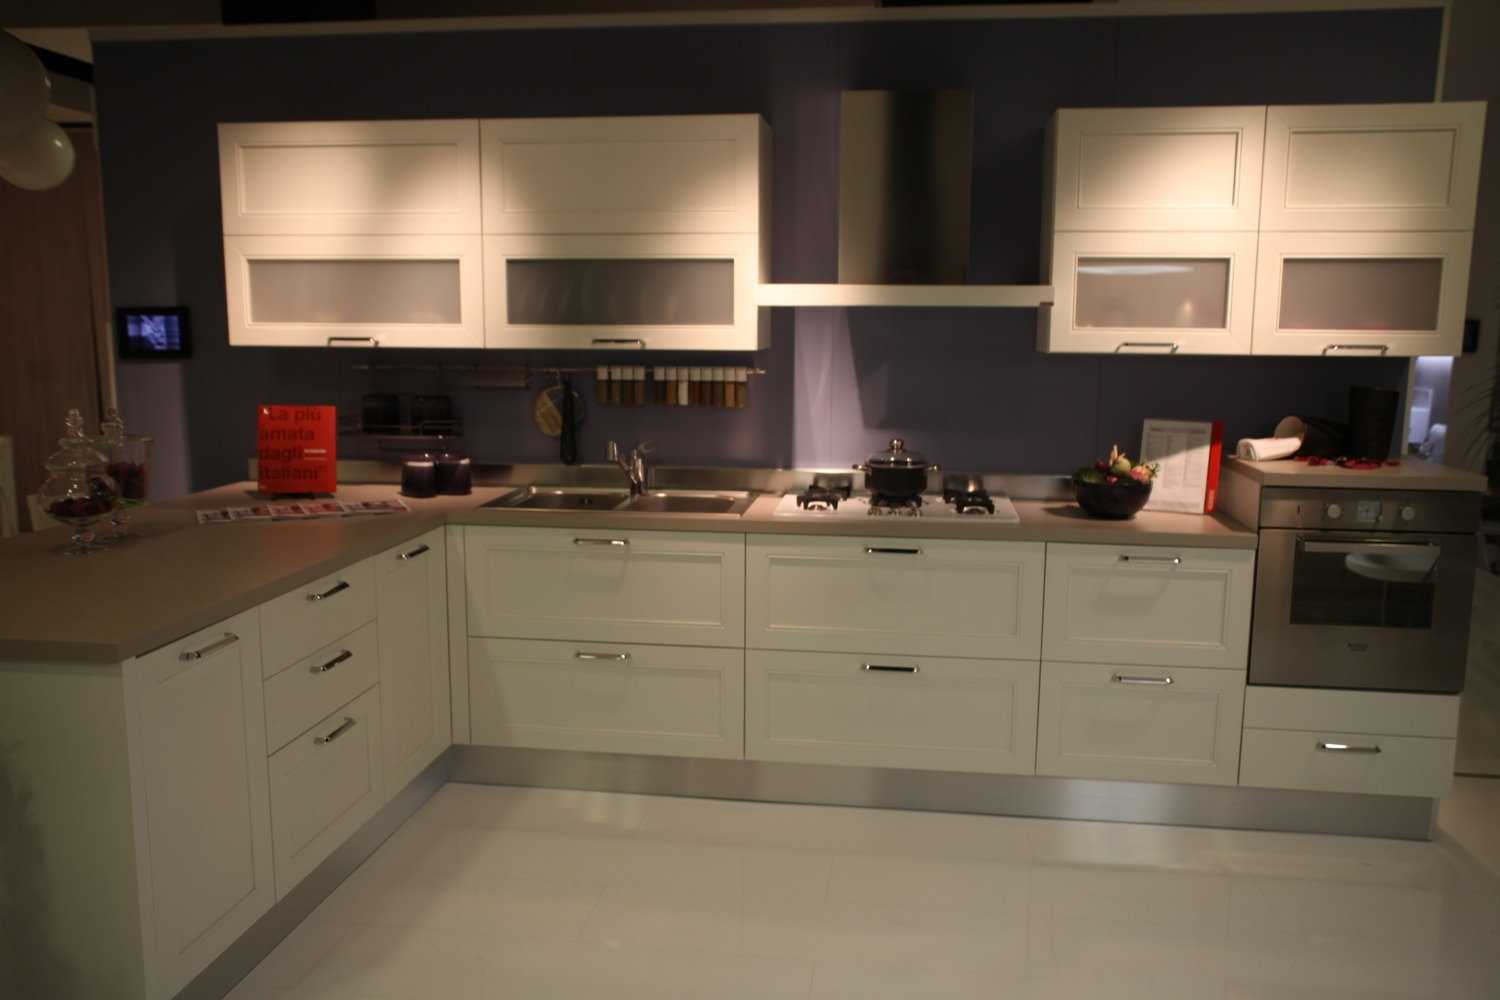 Cuisine scavolini best cucina scavolini margot photos awesome cucine scavolini forum ideas - Cucine scavolini 2017 ...